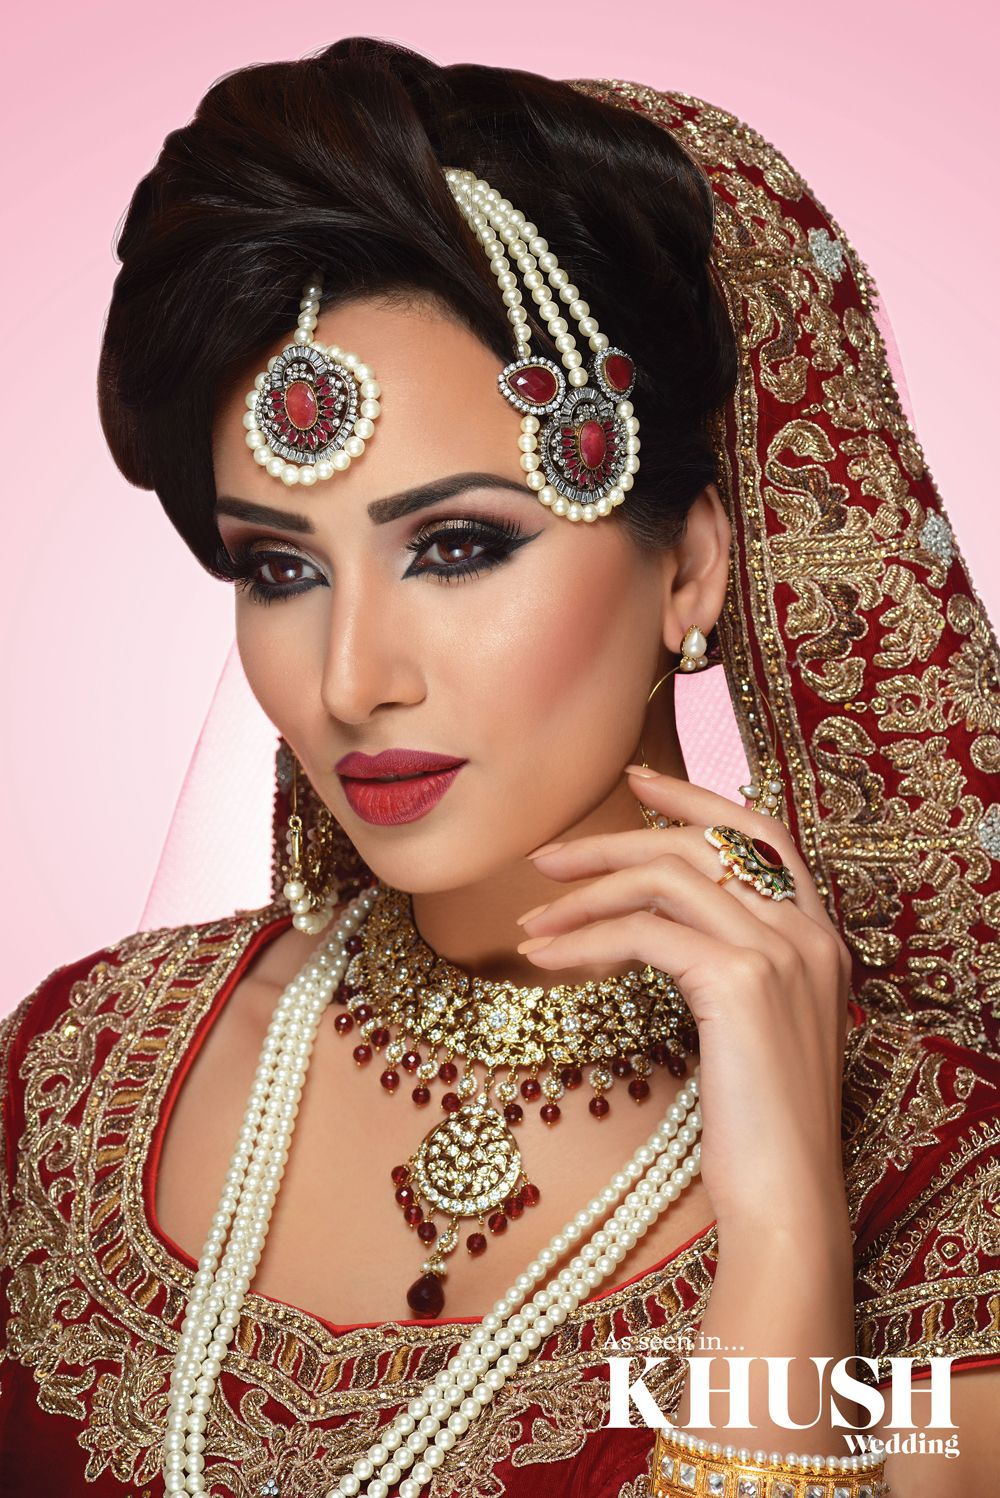 Asian Bridal Makeup Artist Birmingham Instagram Makeupview Co